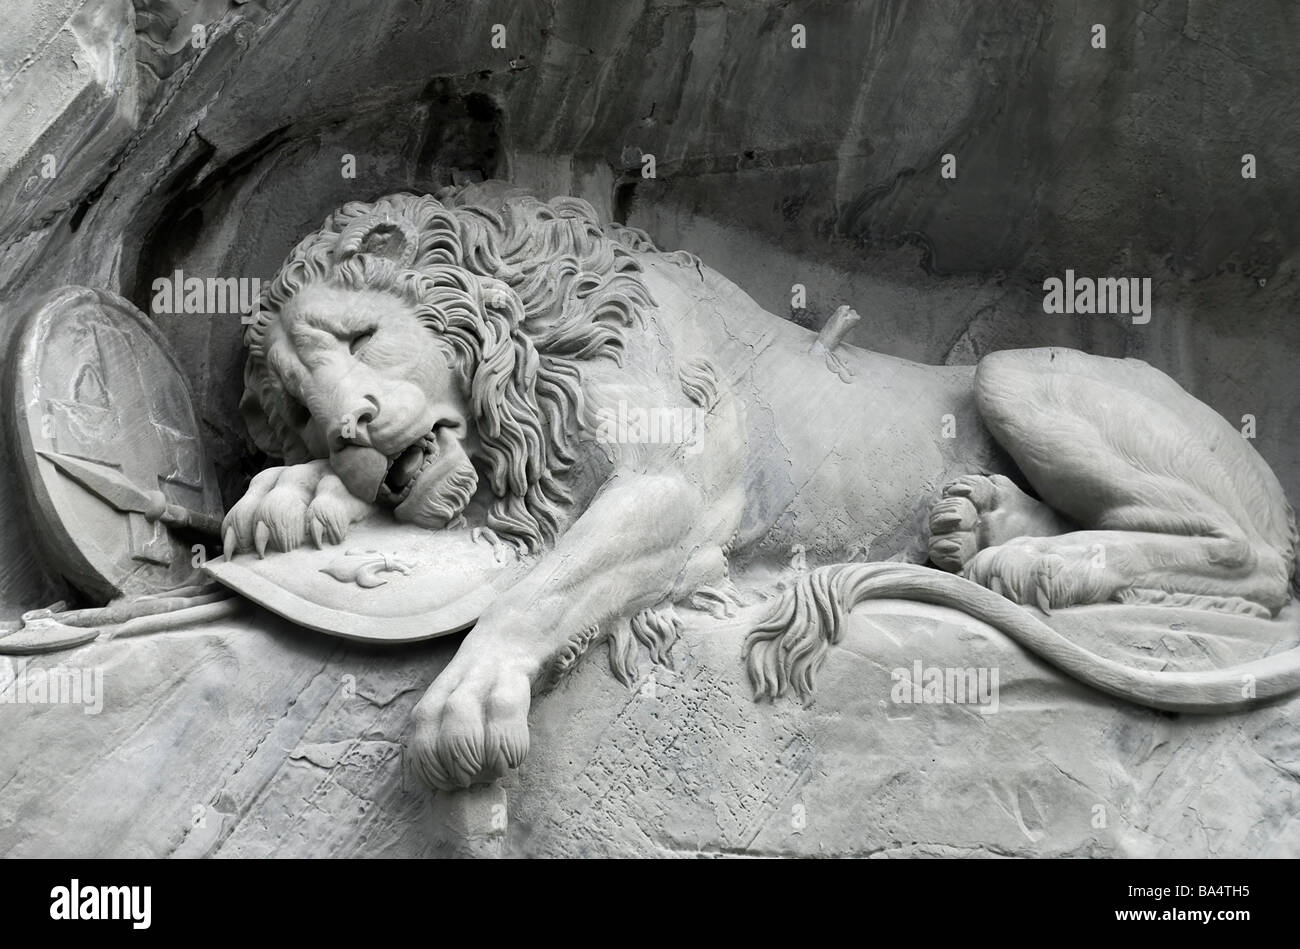 The Lion Monument (German Löwendenkmal) or the Lion of Lucerne is a sculpture in Lucerne, Switzerland - Stock Image